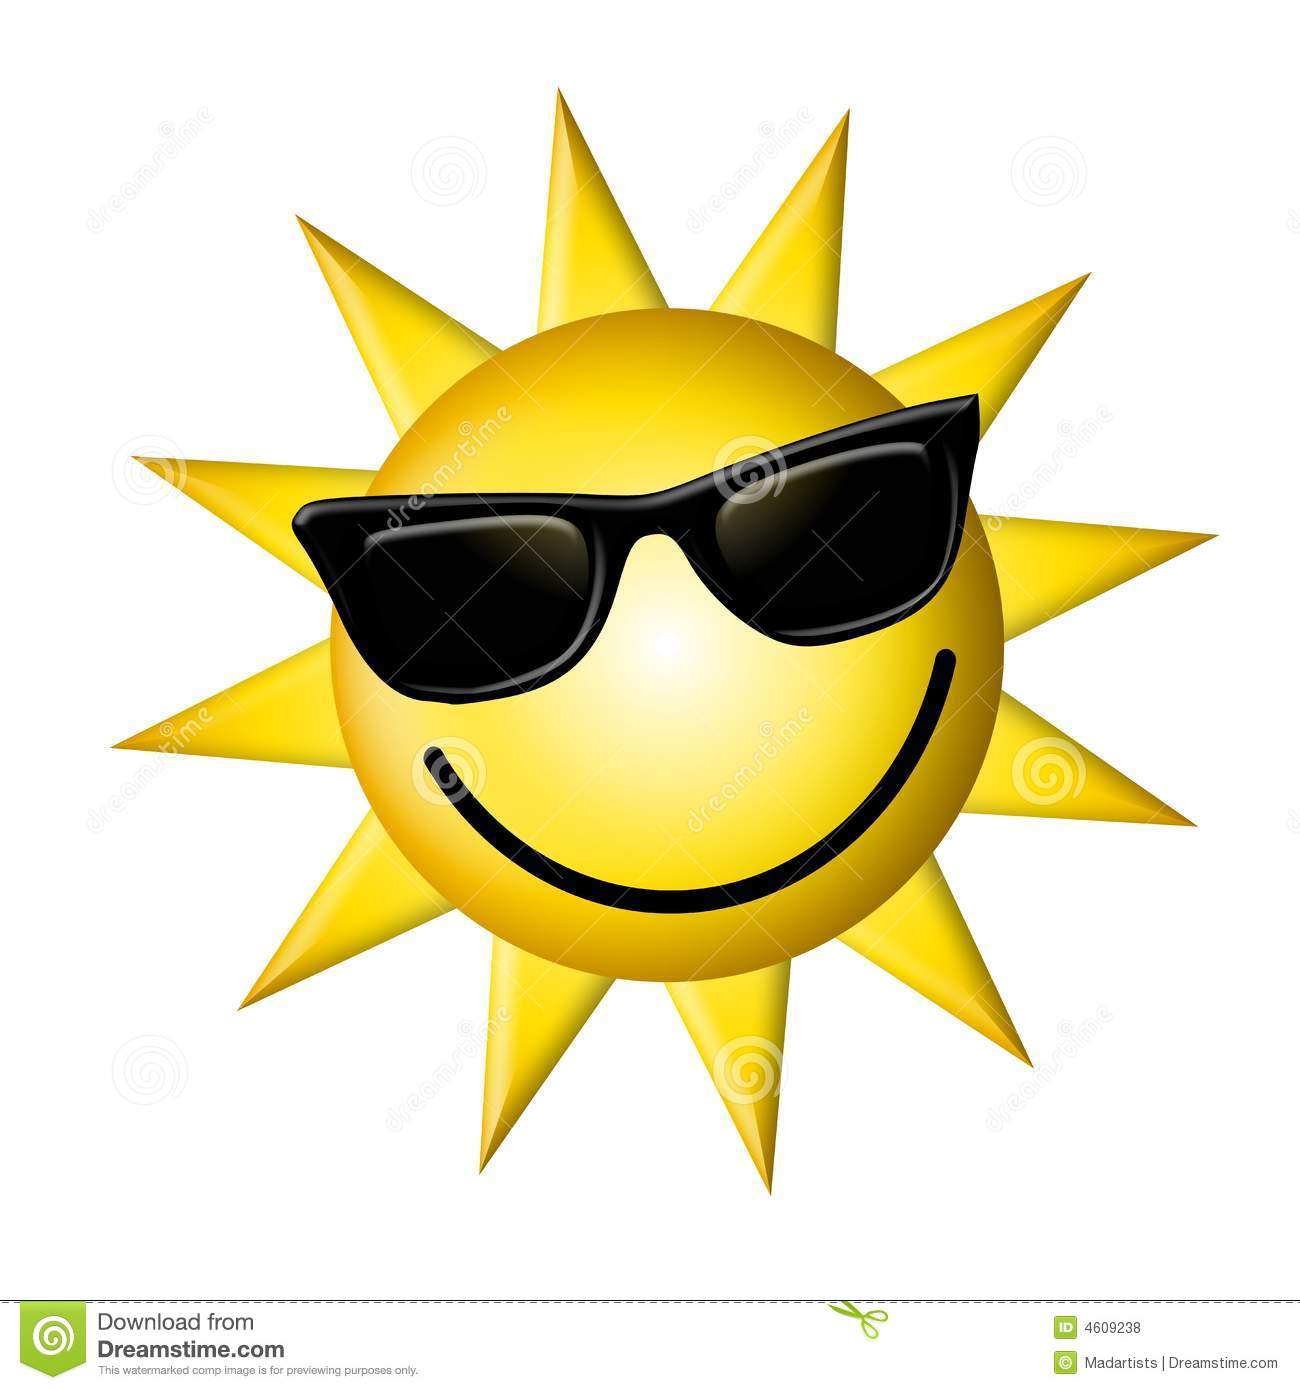 b2d2182eb354 An illustration featuring a bright yellow happy sun wearing black sunglasses  and a smile.